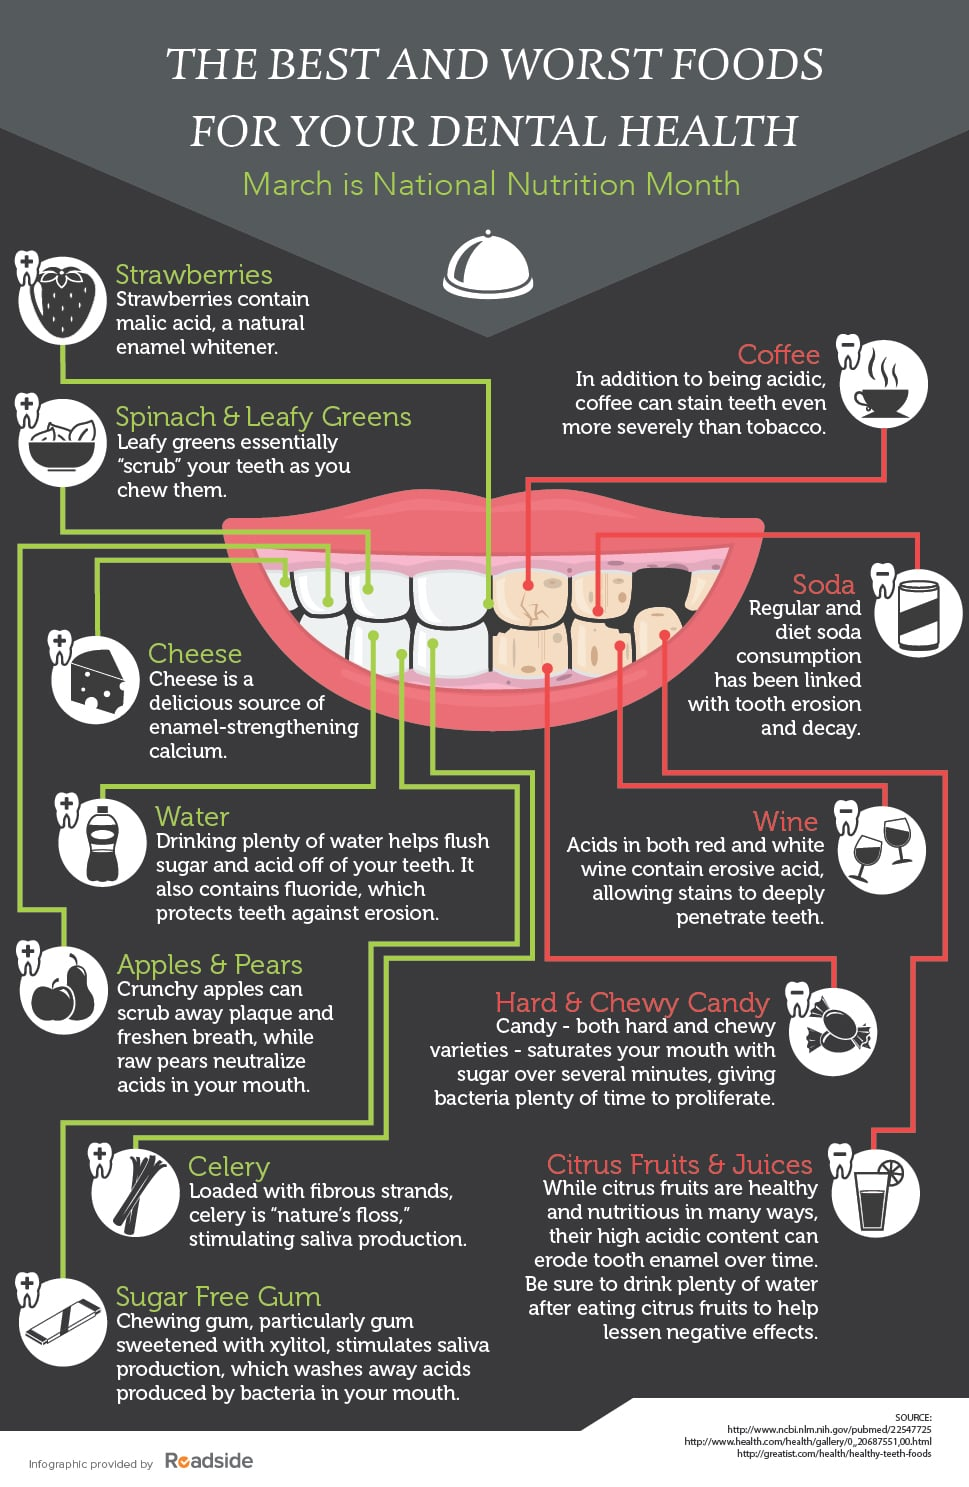 Best and Worst Foods for Dental Health